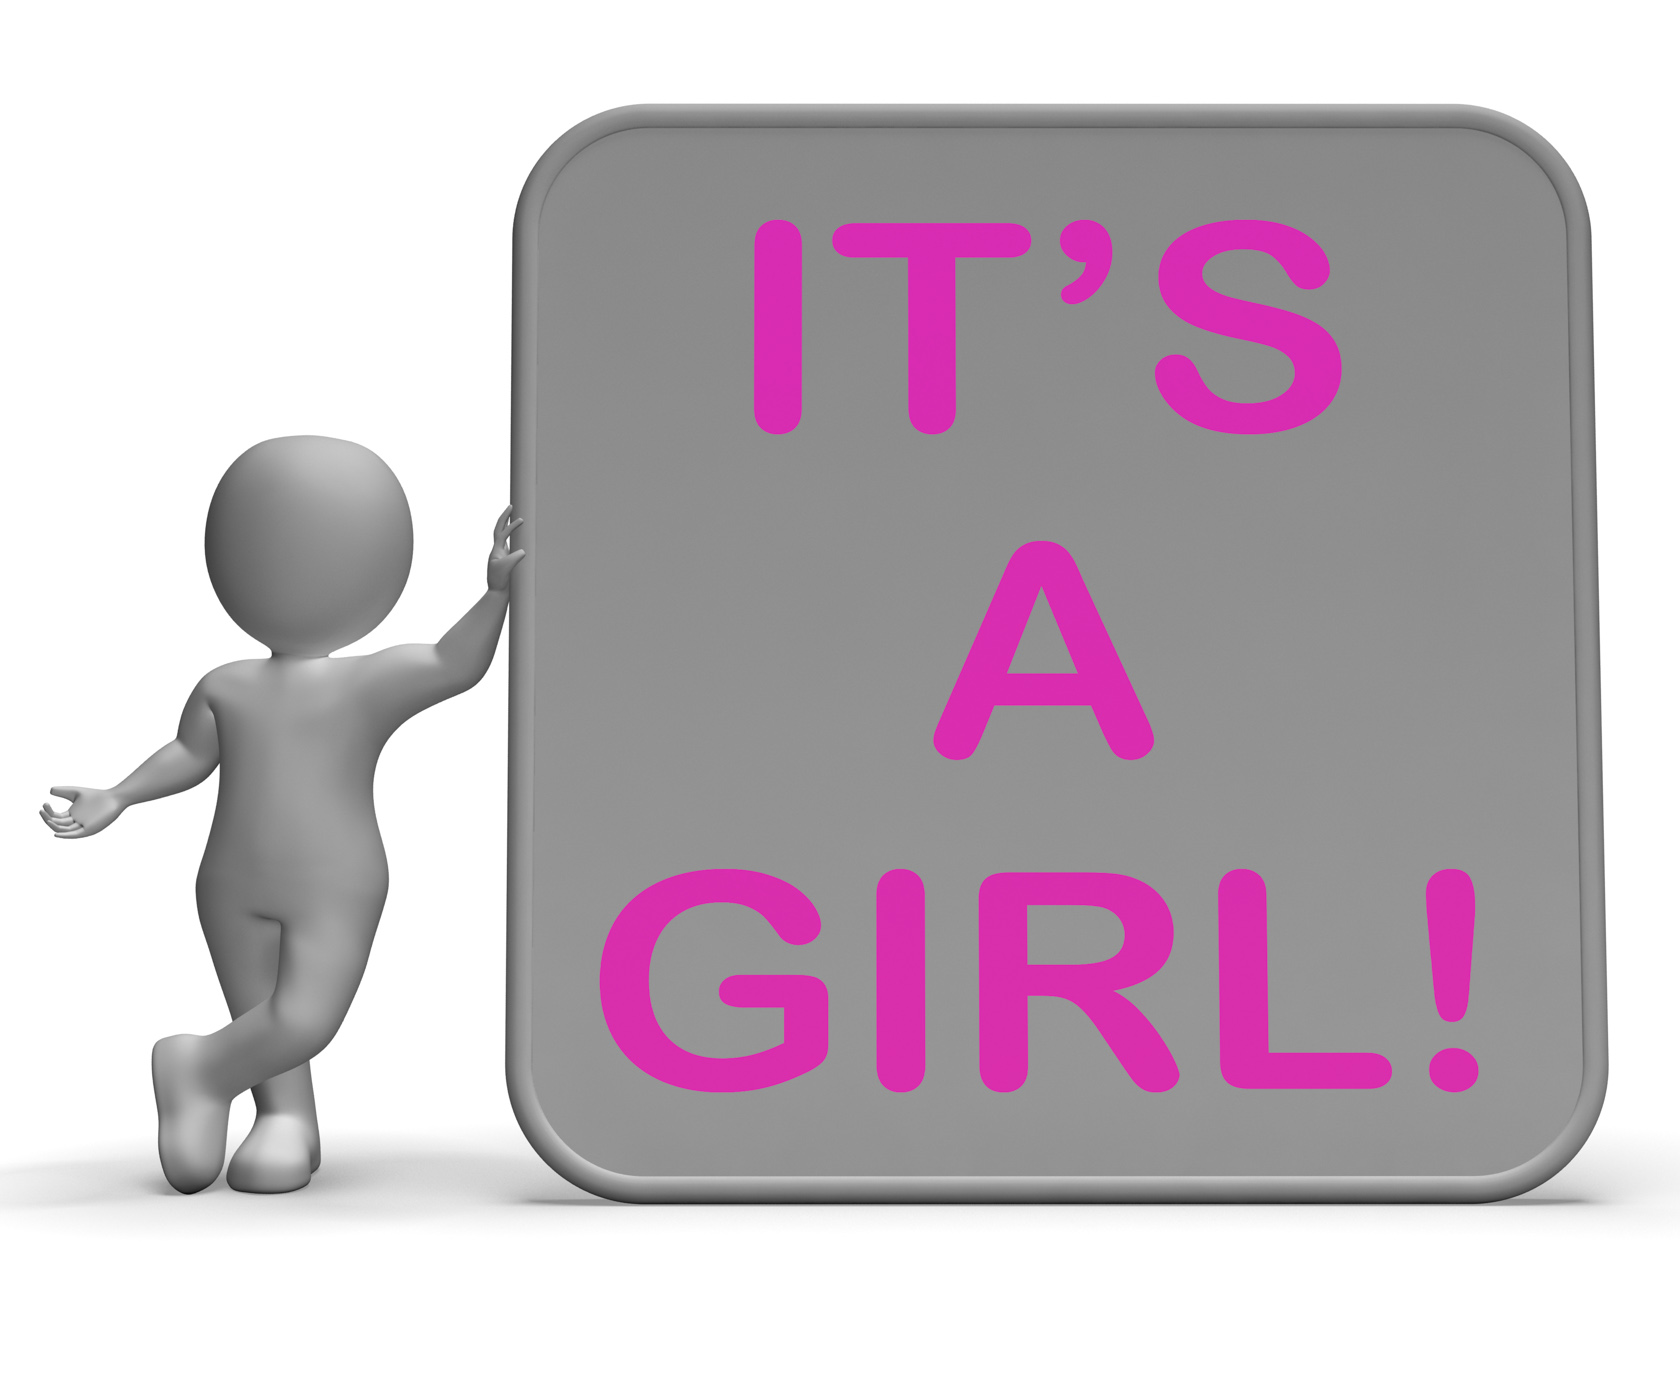 Its A Girl Sign Means Announcing Female Baby, Gender, Sign, Parents, Newborn, HQ Photo